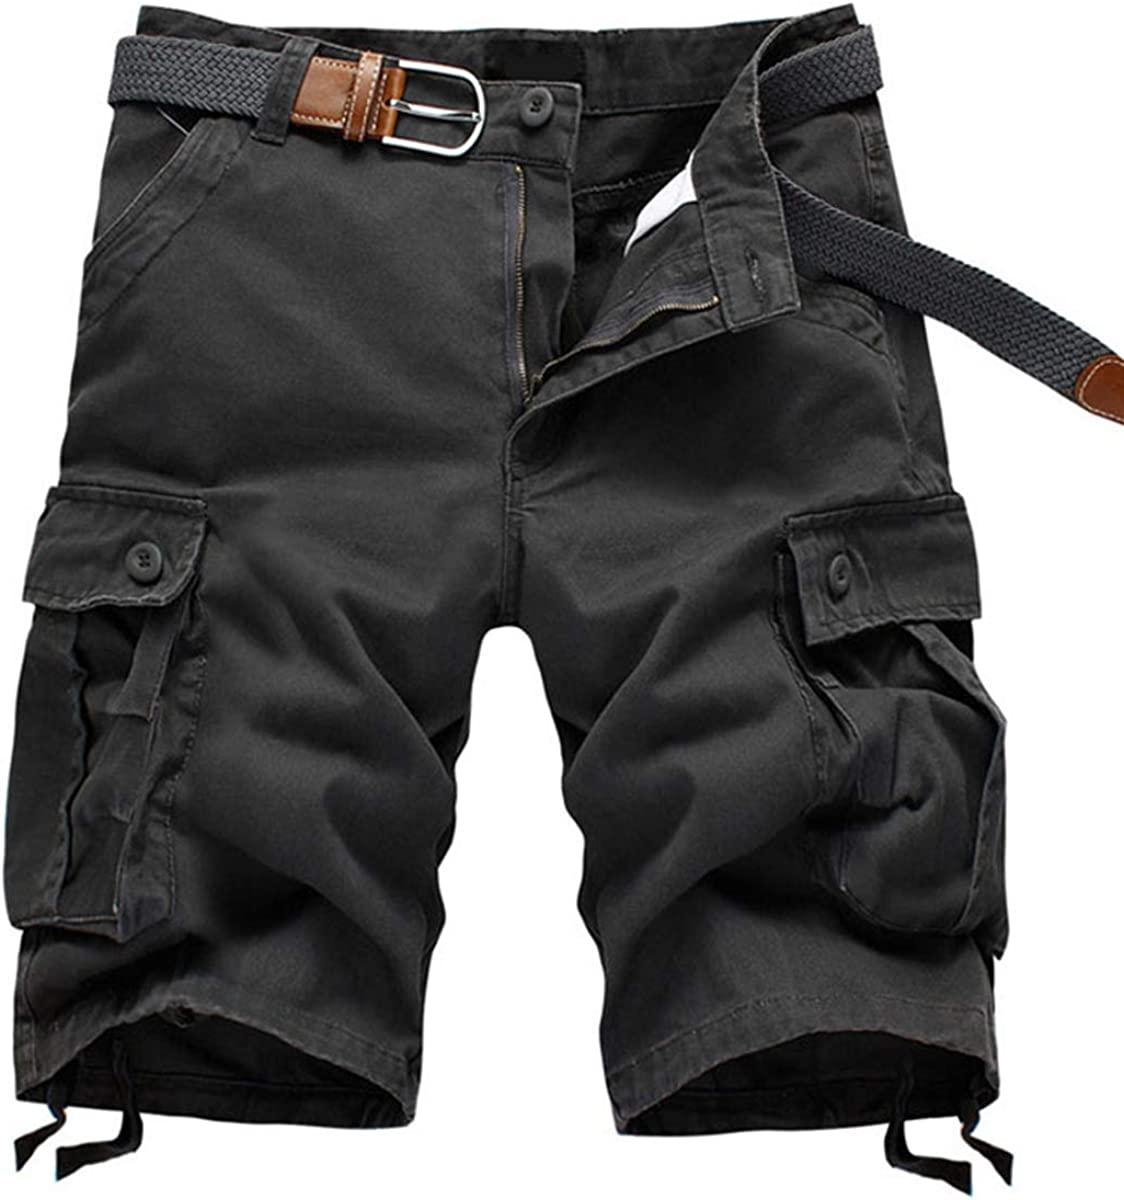 APTRO Men's Cargo Shorts Cotton Lightweight Relaxed Fit Casual Shorts with Multi-Pockets